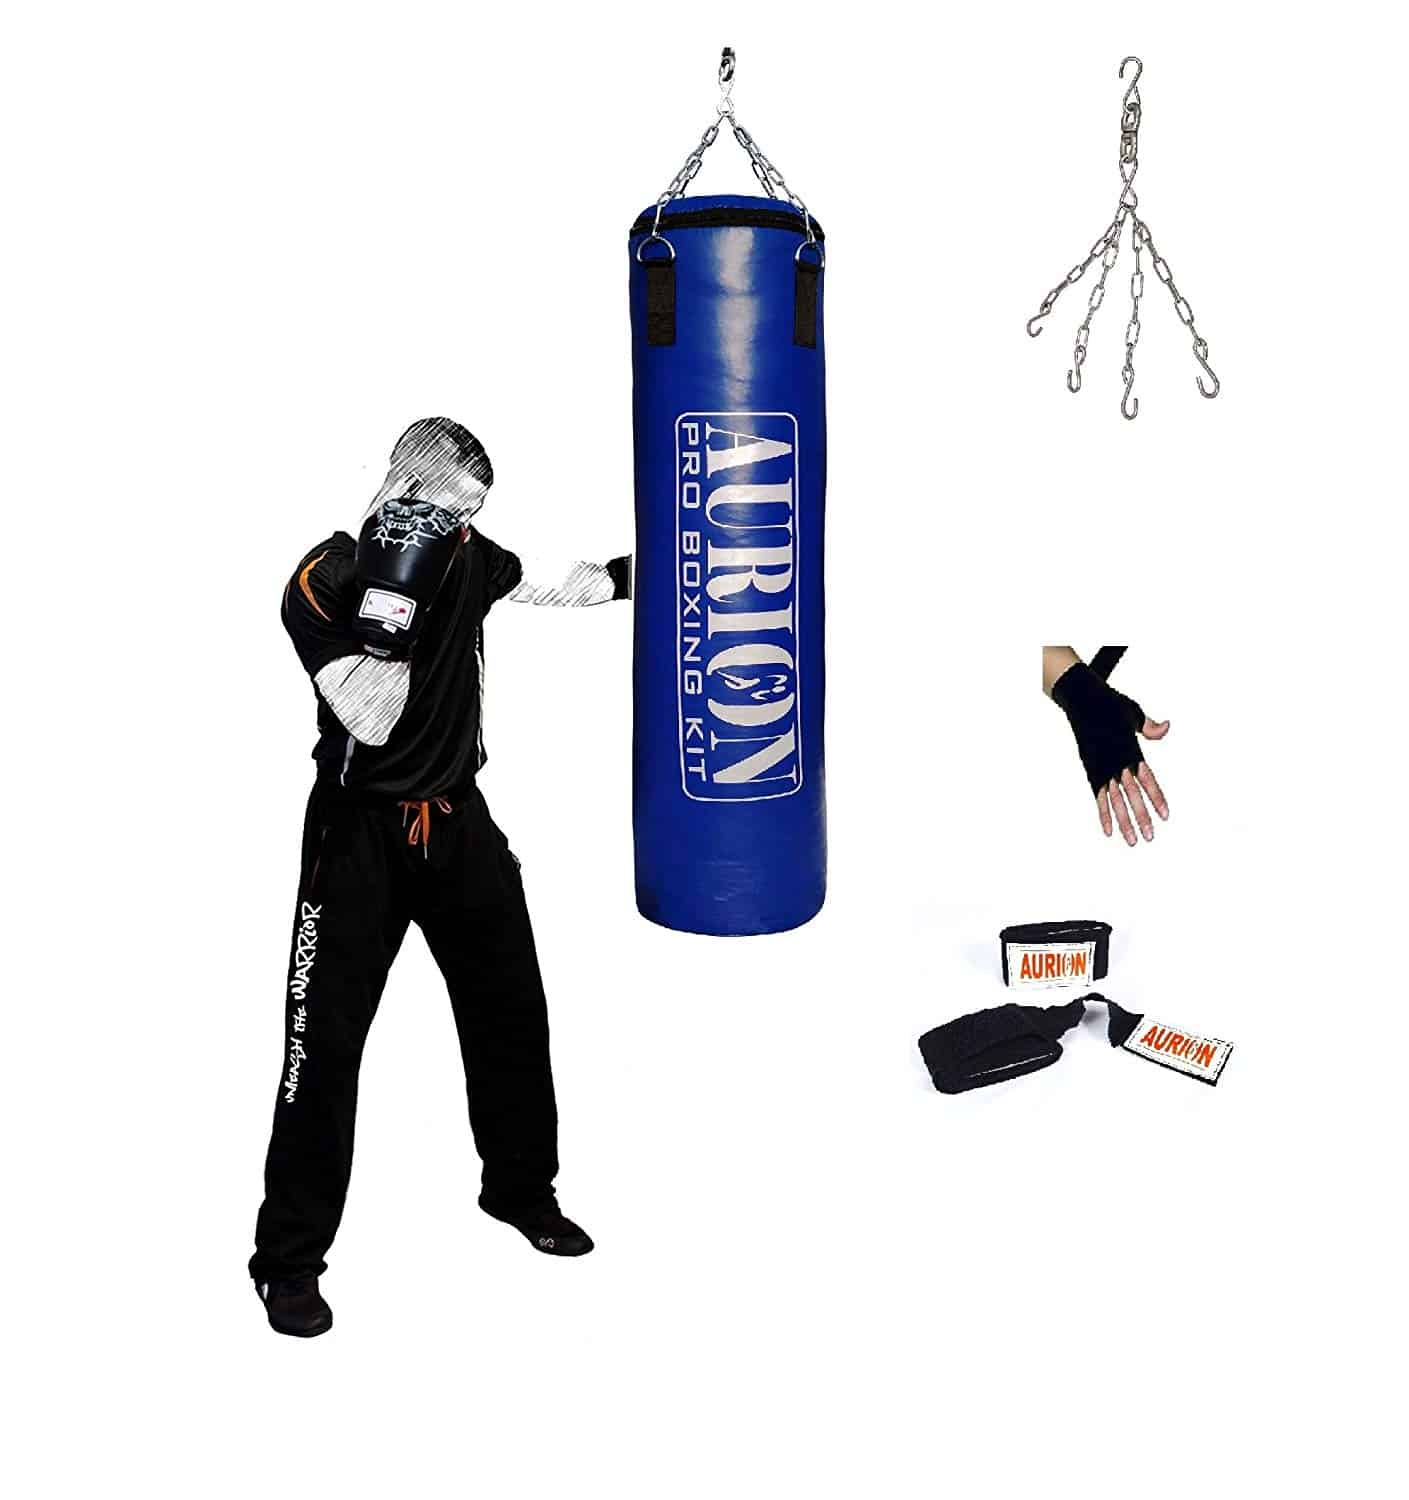 punching bag for getting the aggression out